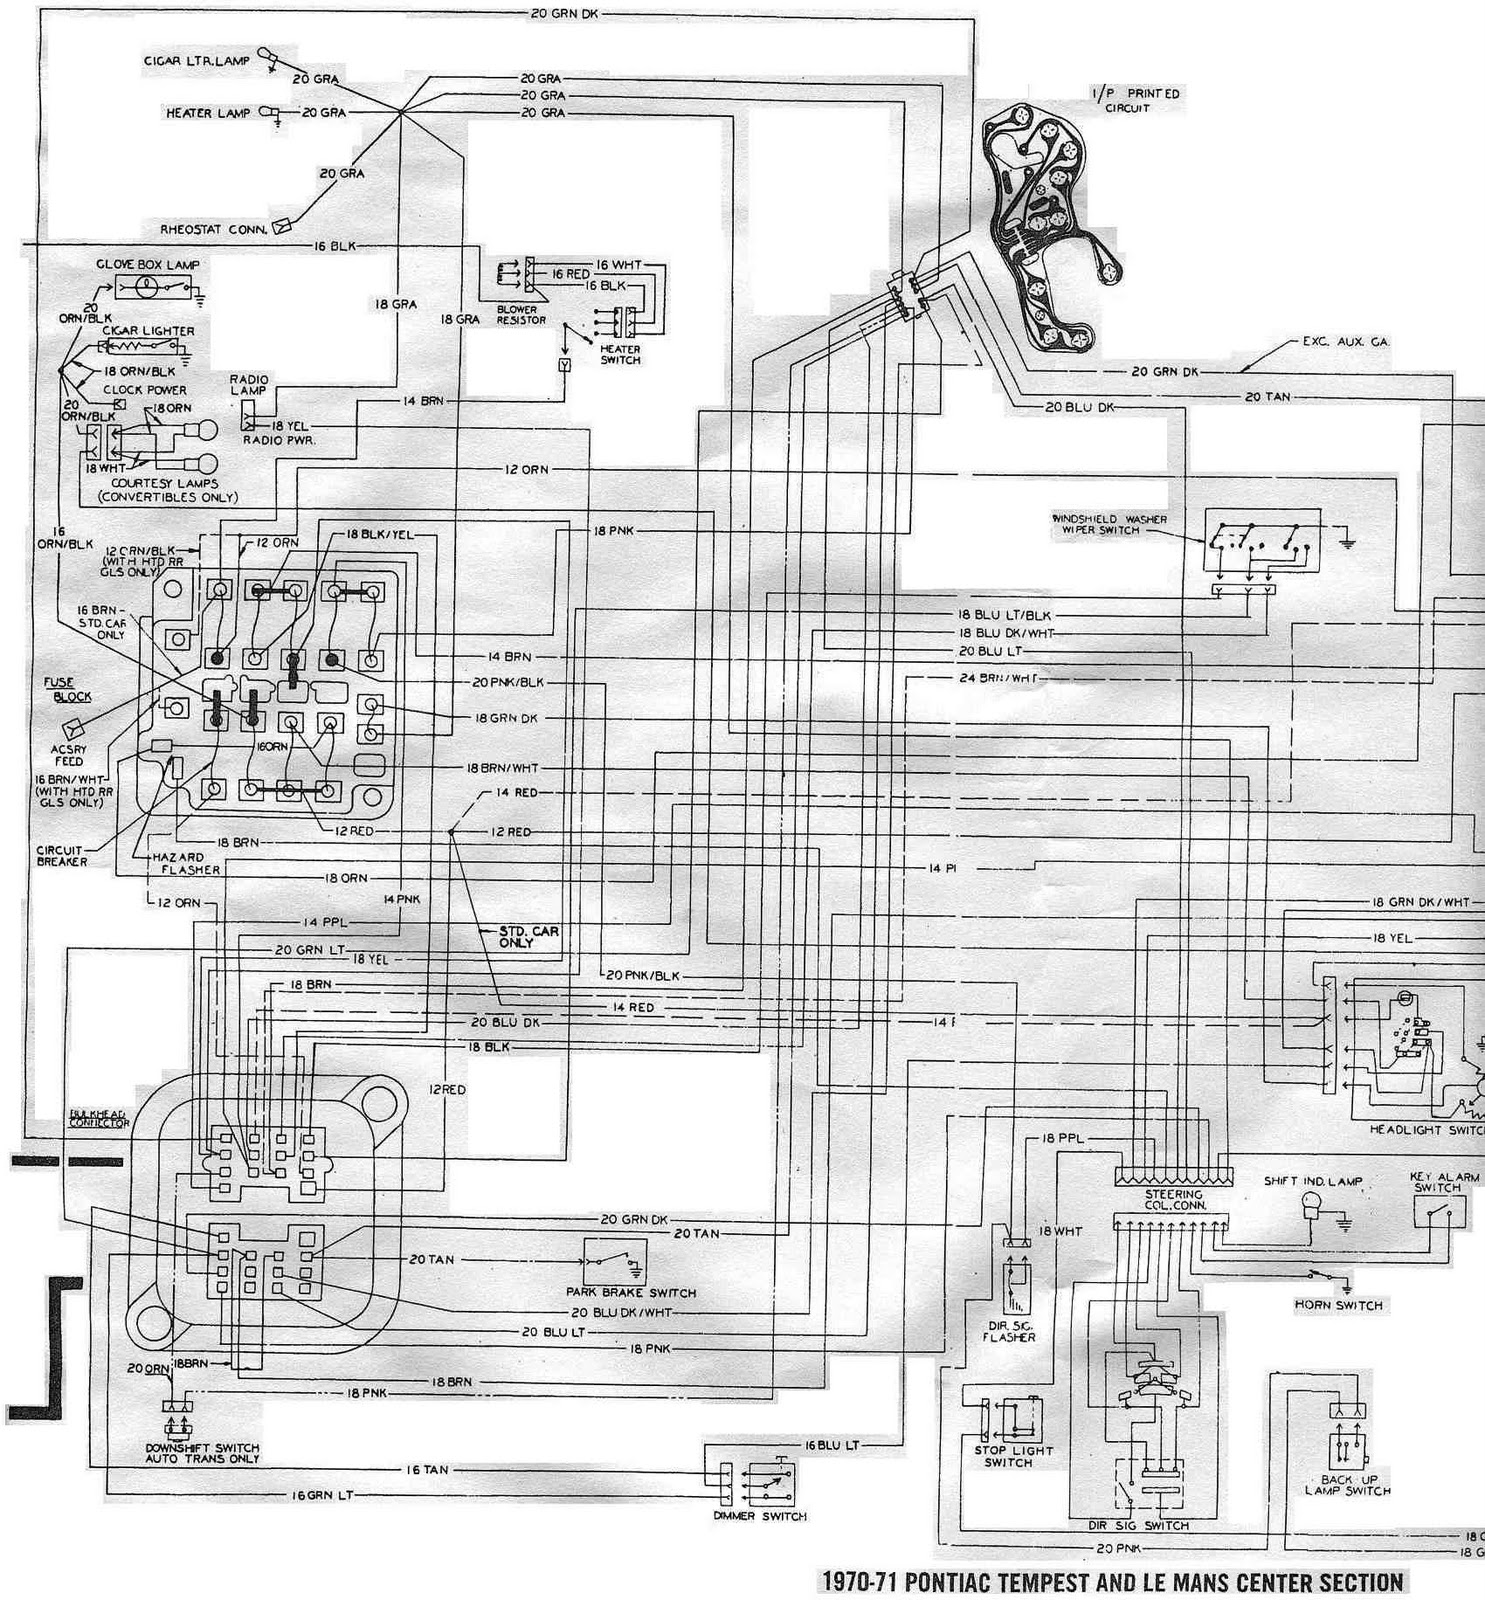 67 Pontiac Coil Wiring Diagram | Wiring Diagram